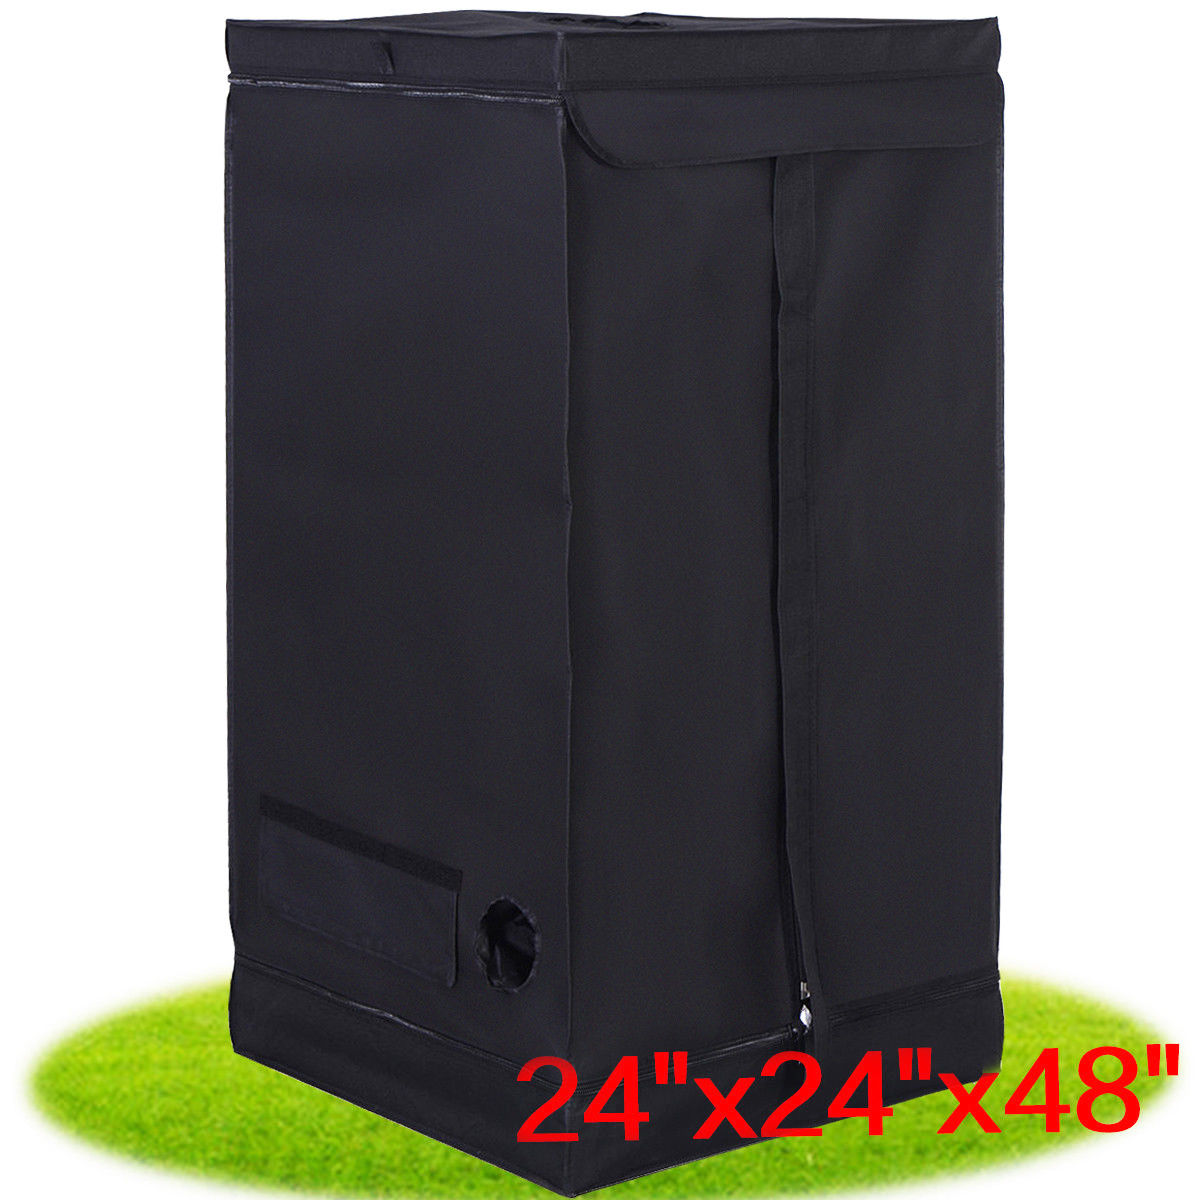 Costway Indoor Grow Tent Room Reflective Hydroponic Non Toxic Clone Hut 6 Size (24''X24''X48'')